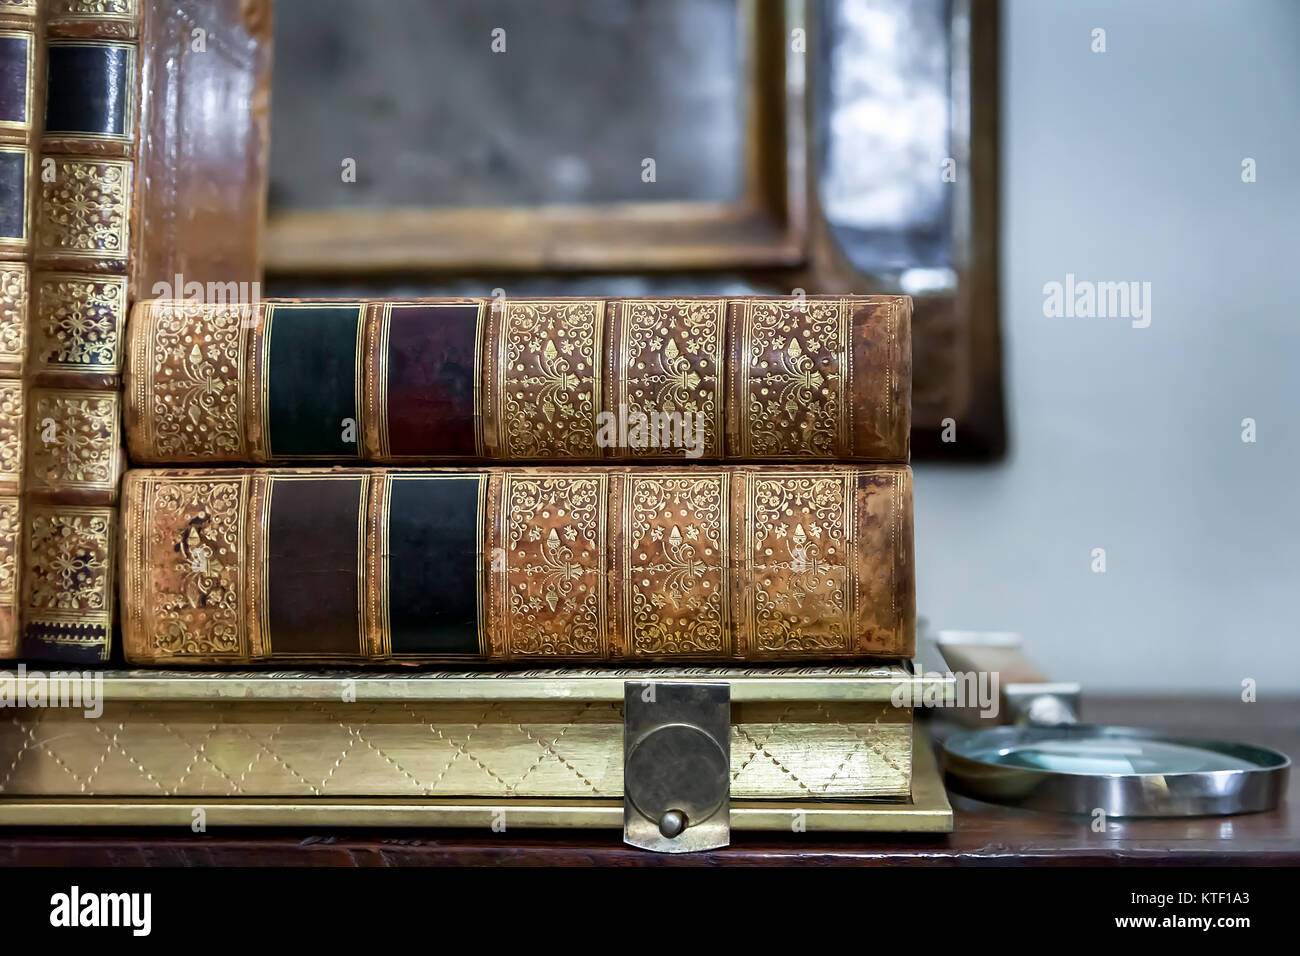 Antique Books. Vintage Antiquarian Books piled on wooden surface. Closeup. - Stock Image